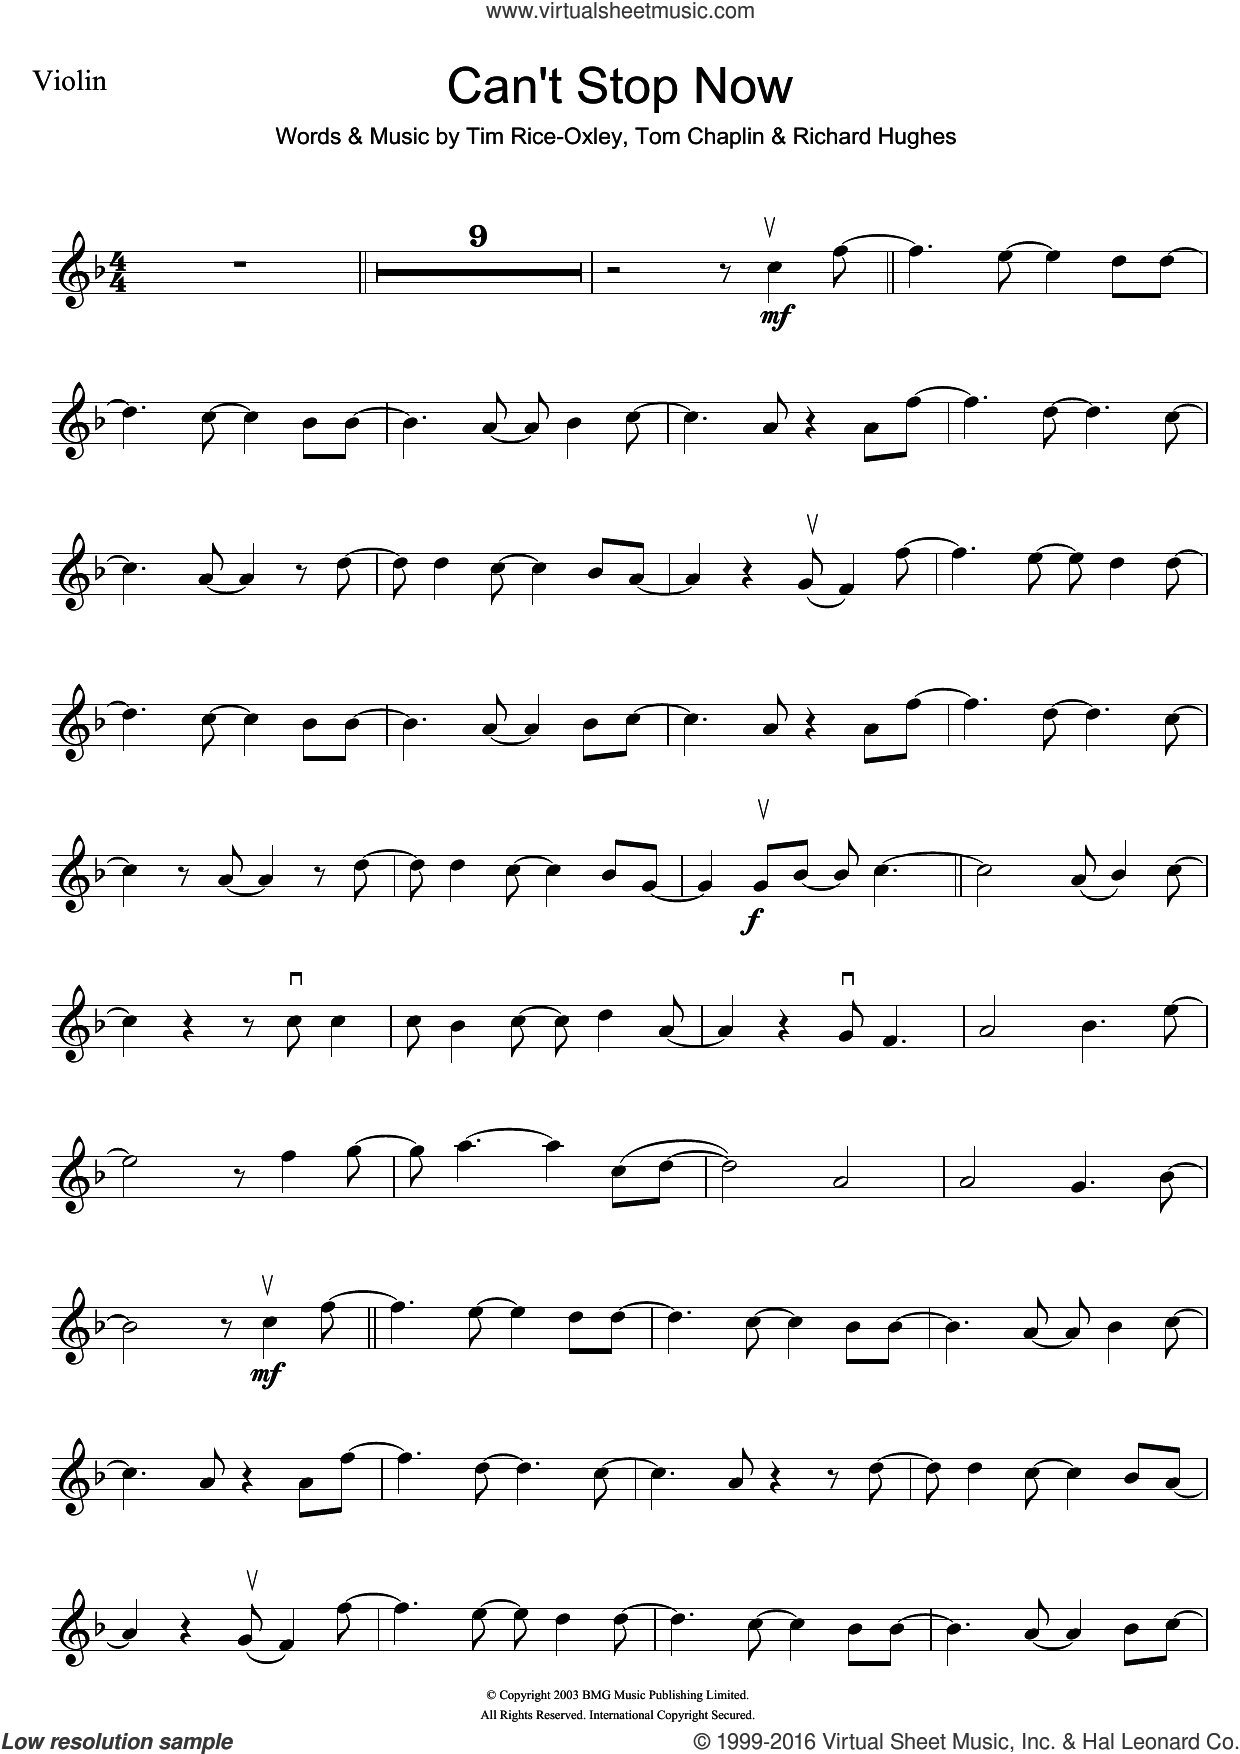 Can't Stop Now sheet music for violin solo by Tim Rice-Oxley, Richard Hughes and Tom Chaplin, intermediate. Score Image Preview.